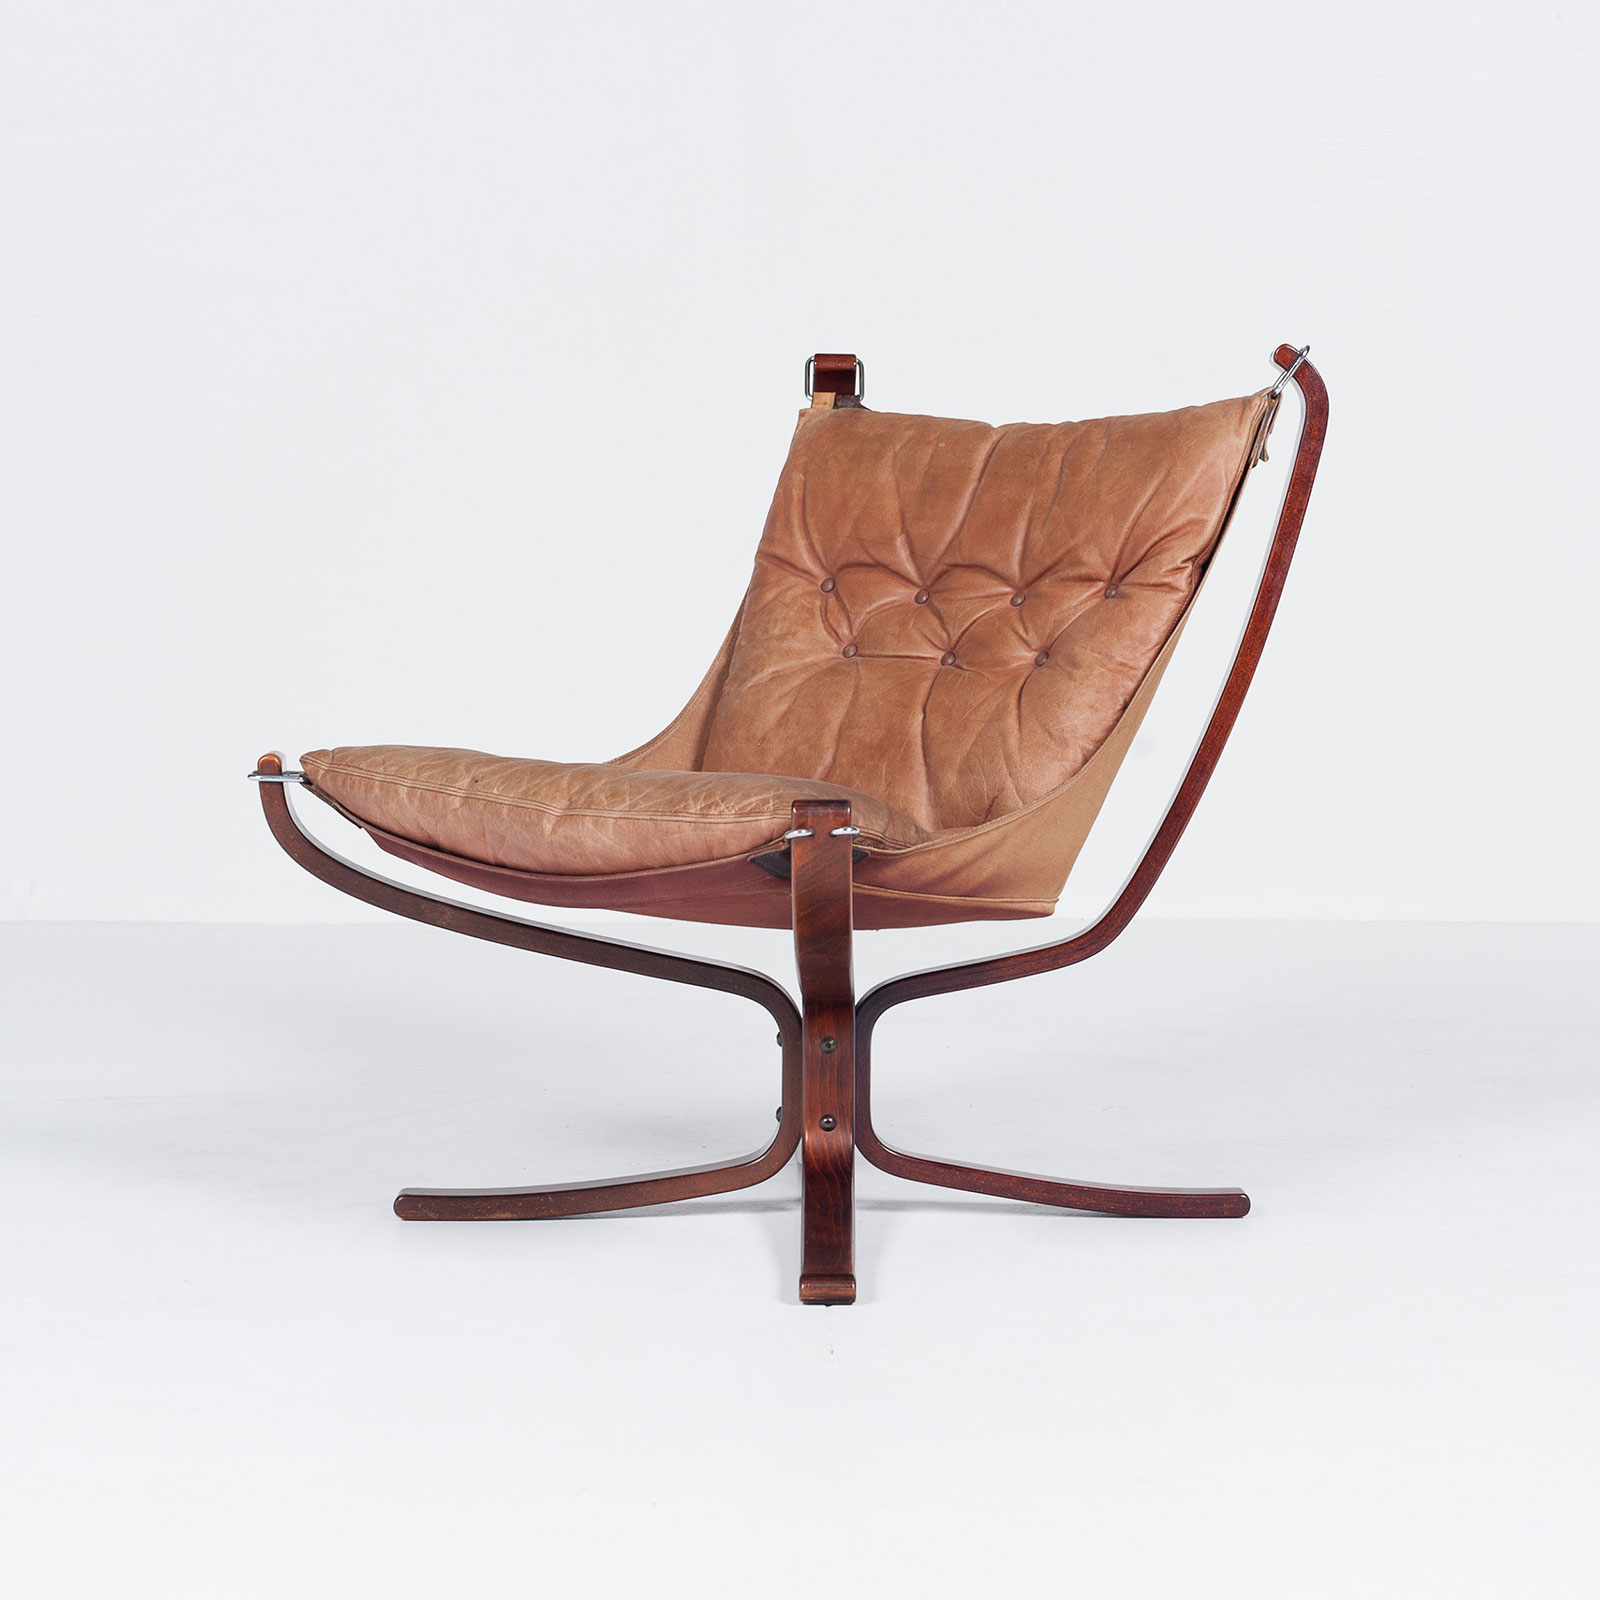 Low Back Falcon Armchair In Tan Leather By Sigurd Ressell For Vatne Mobler, 1971, Norway Hero 6701